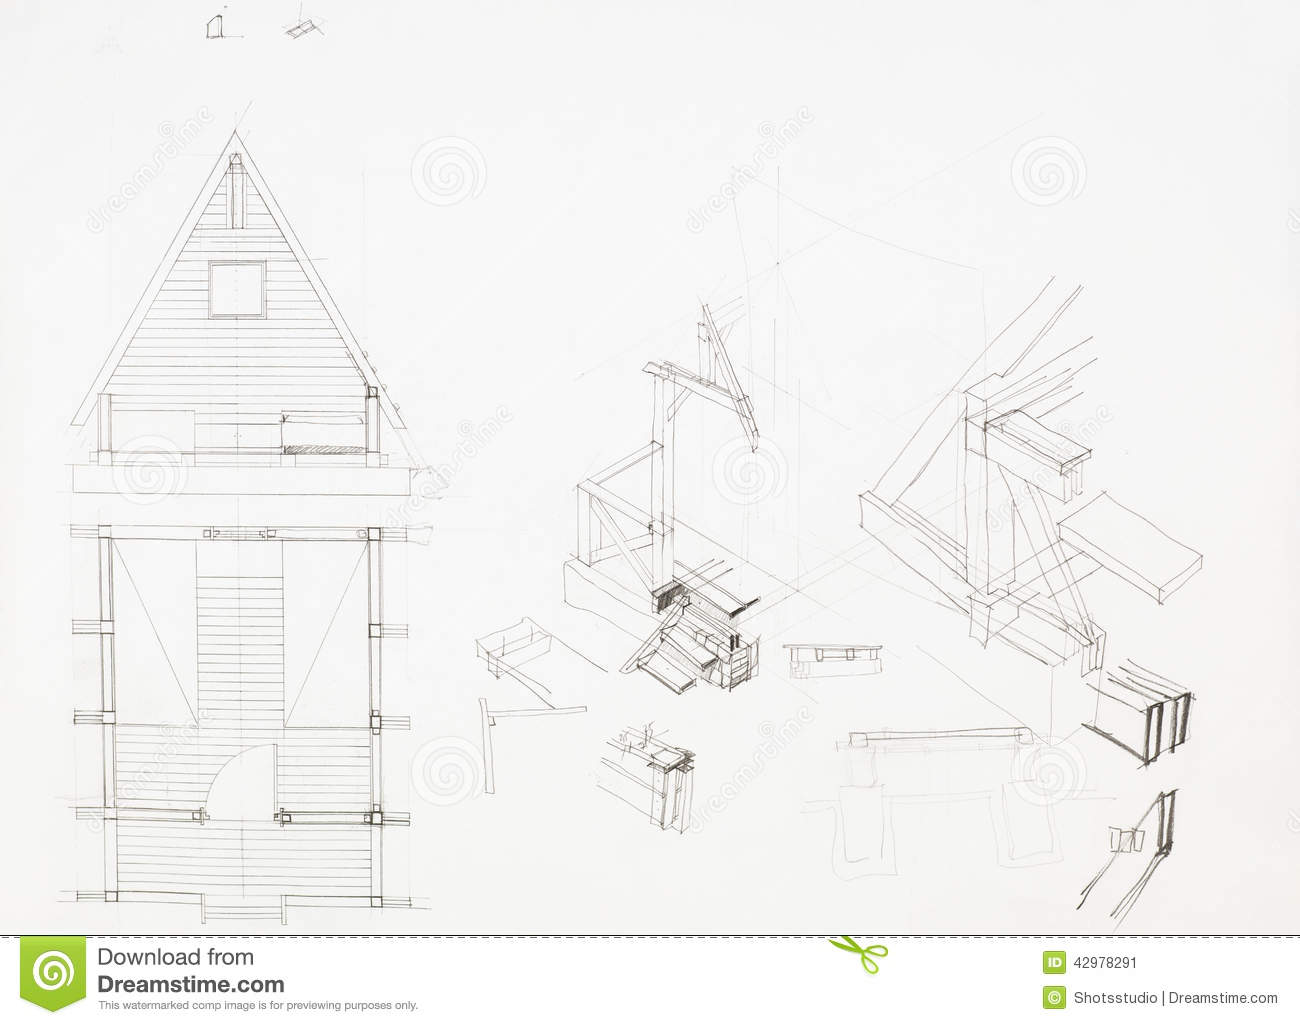 Architectural Blueprint Of House With Attic, Drawn By Hand